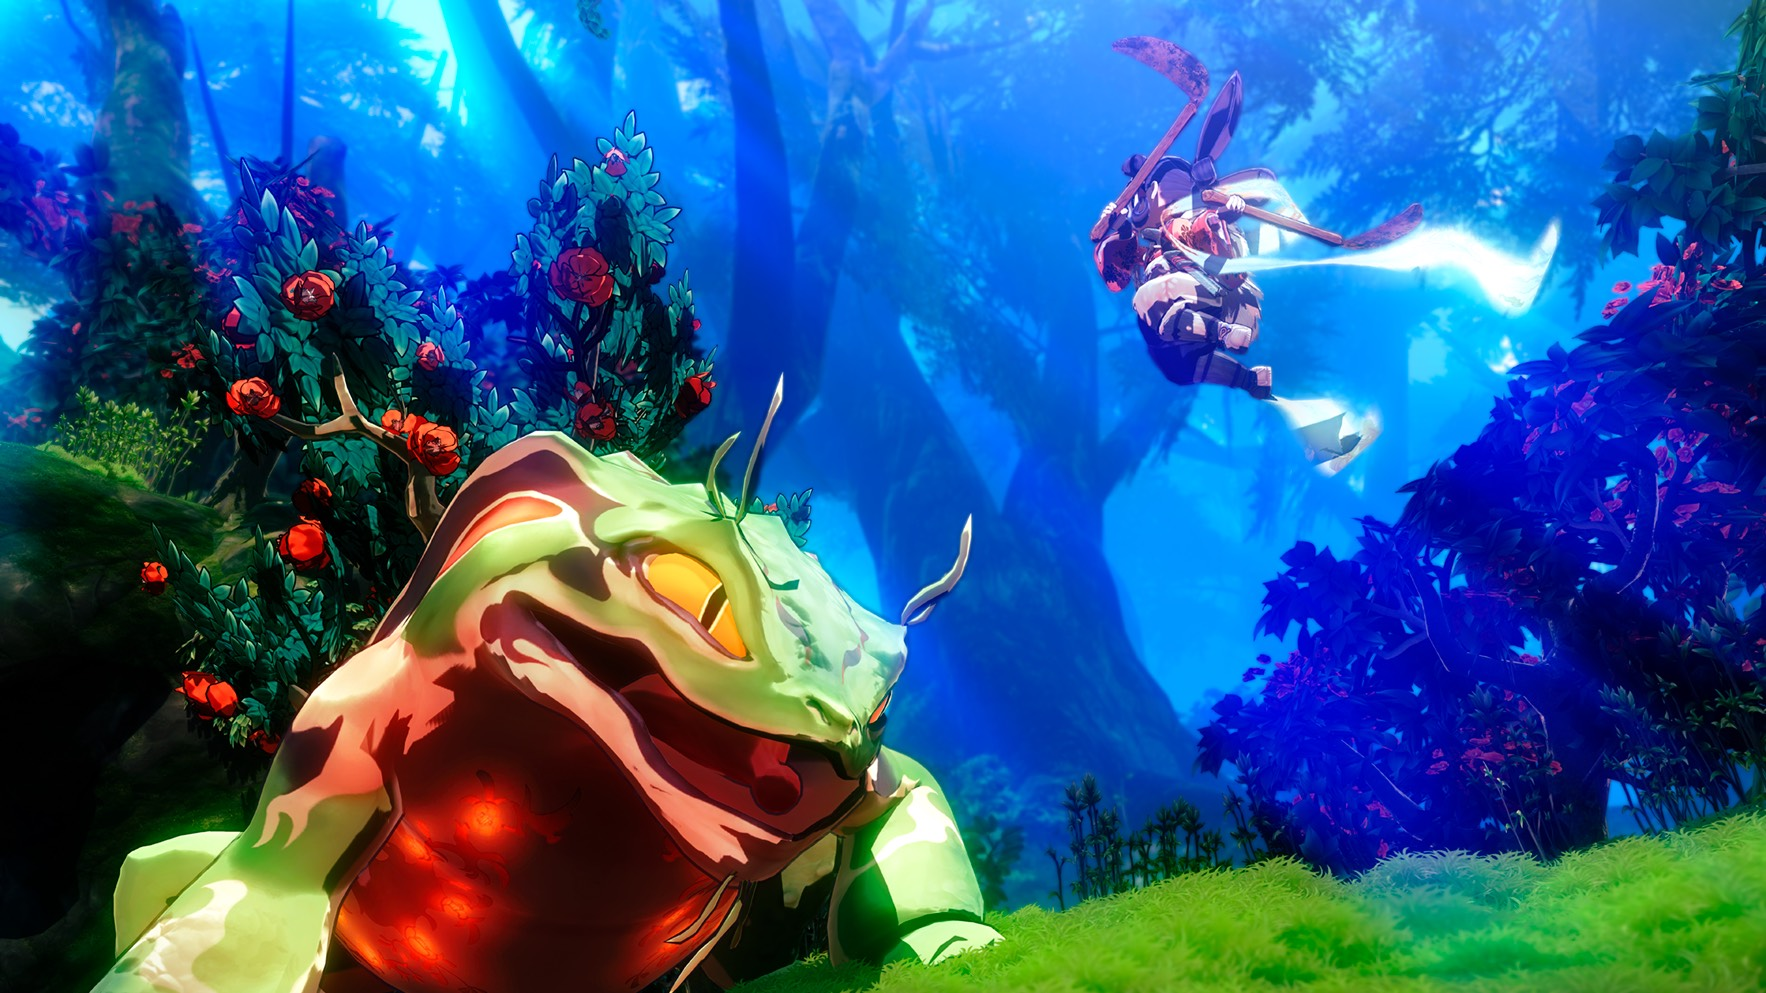 Sakuna: Of Rice and Ruin Screenshot of Sakuna leaping into battle with a giant frog in a lush forest